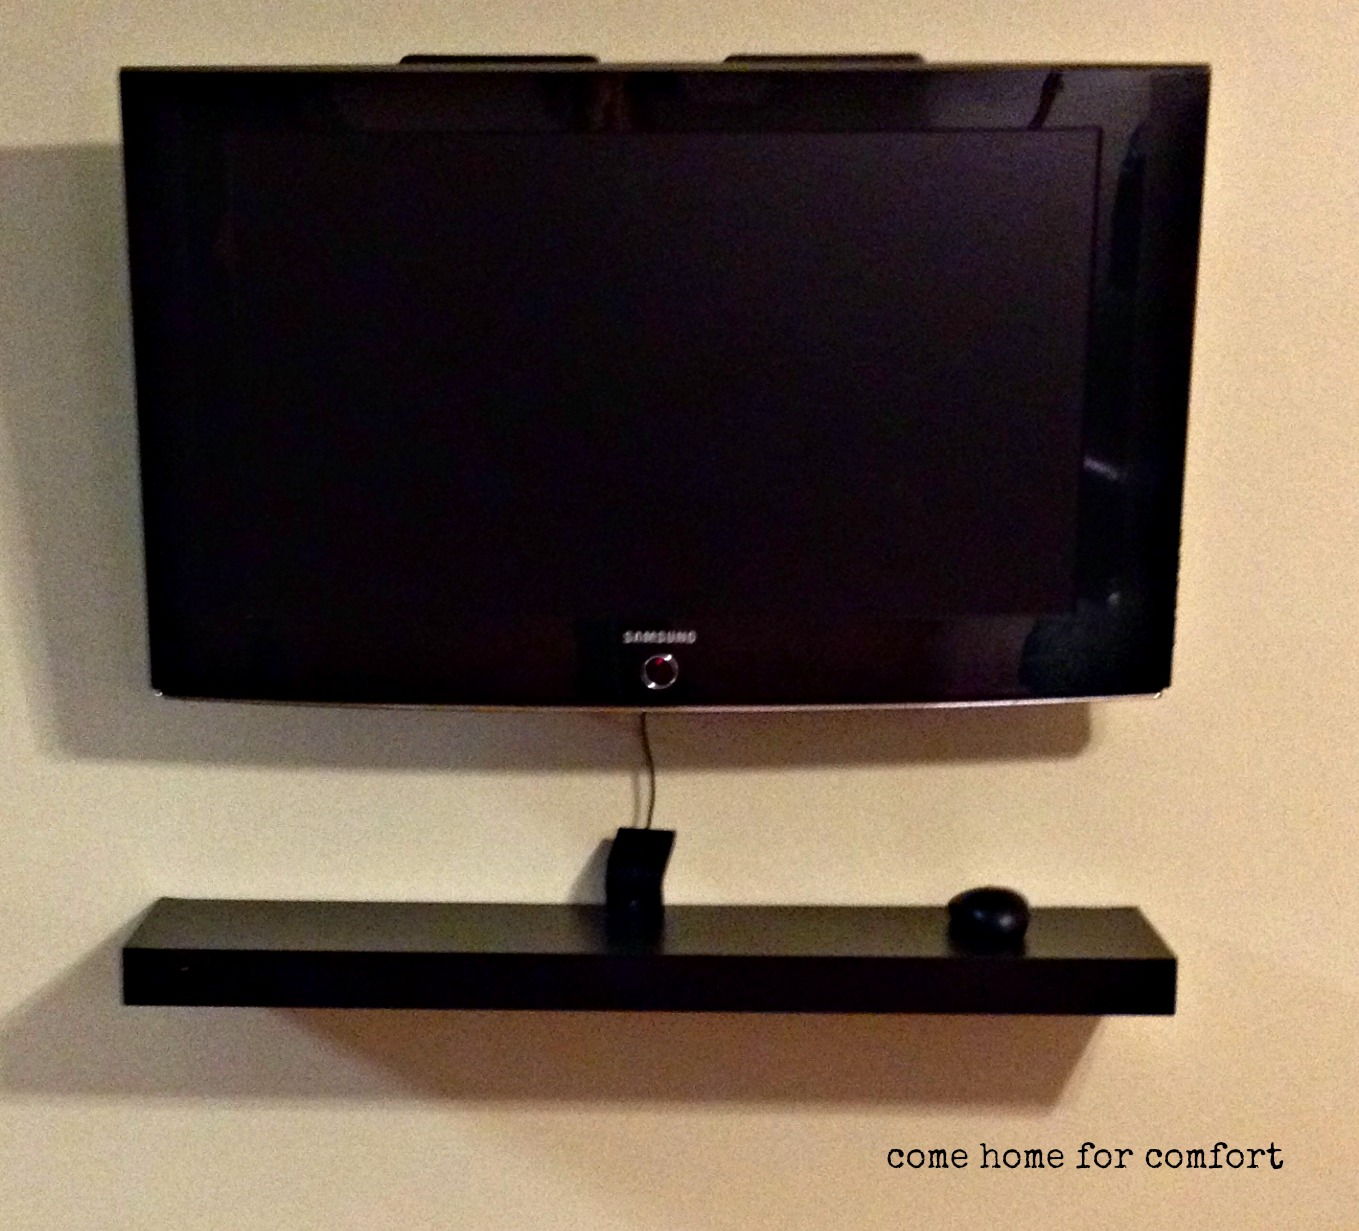 Diy mounted flat screen with hidden cords come home for for How to wall mount a tv